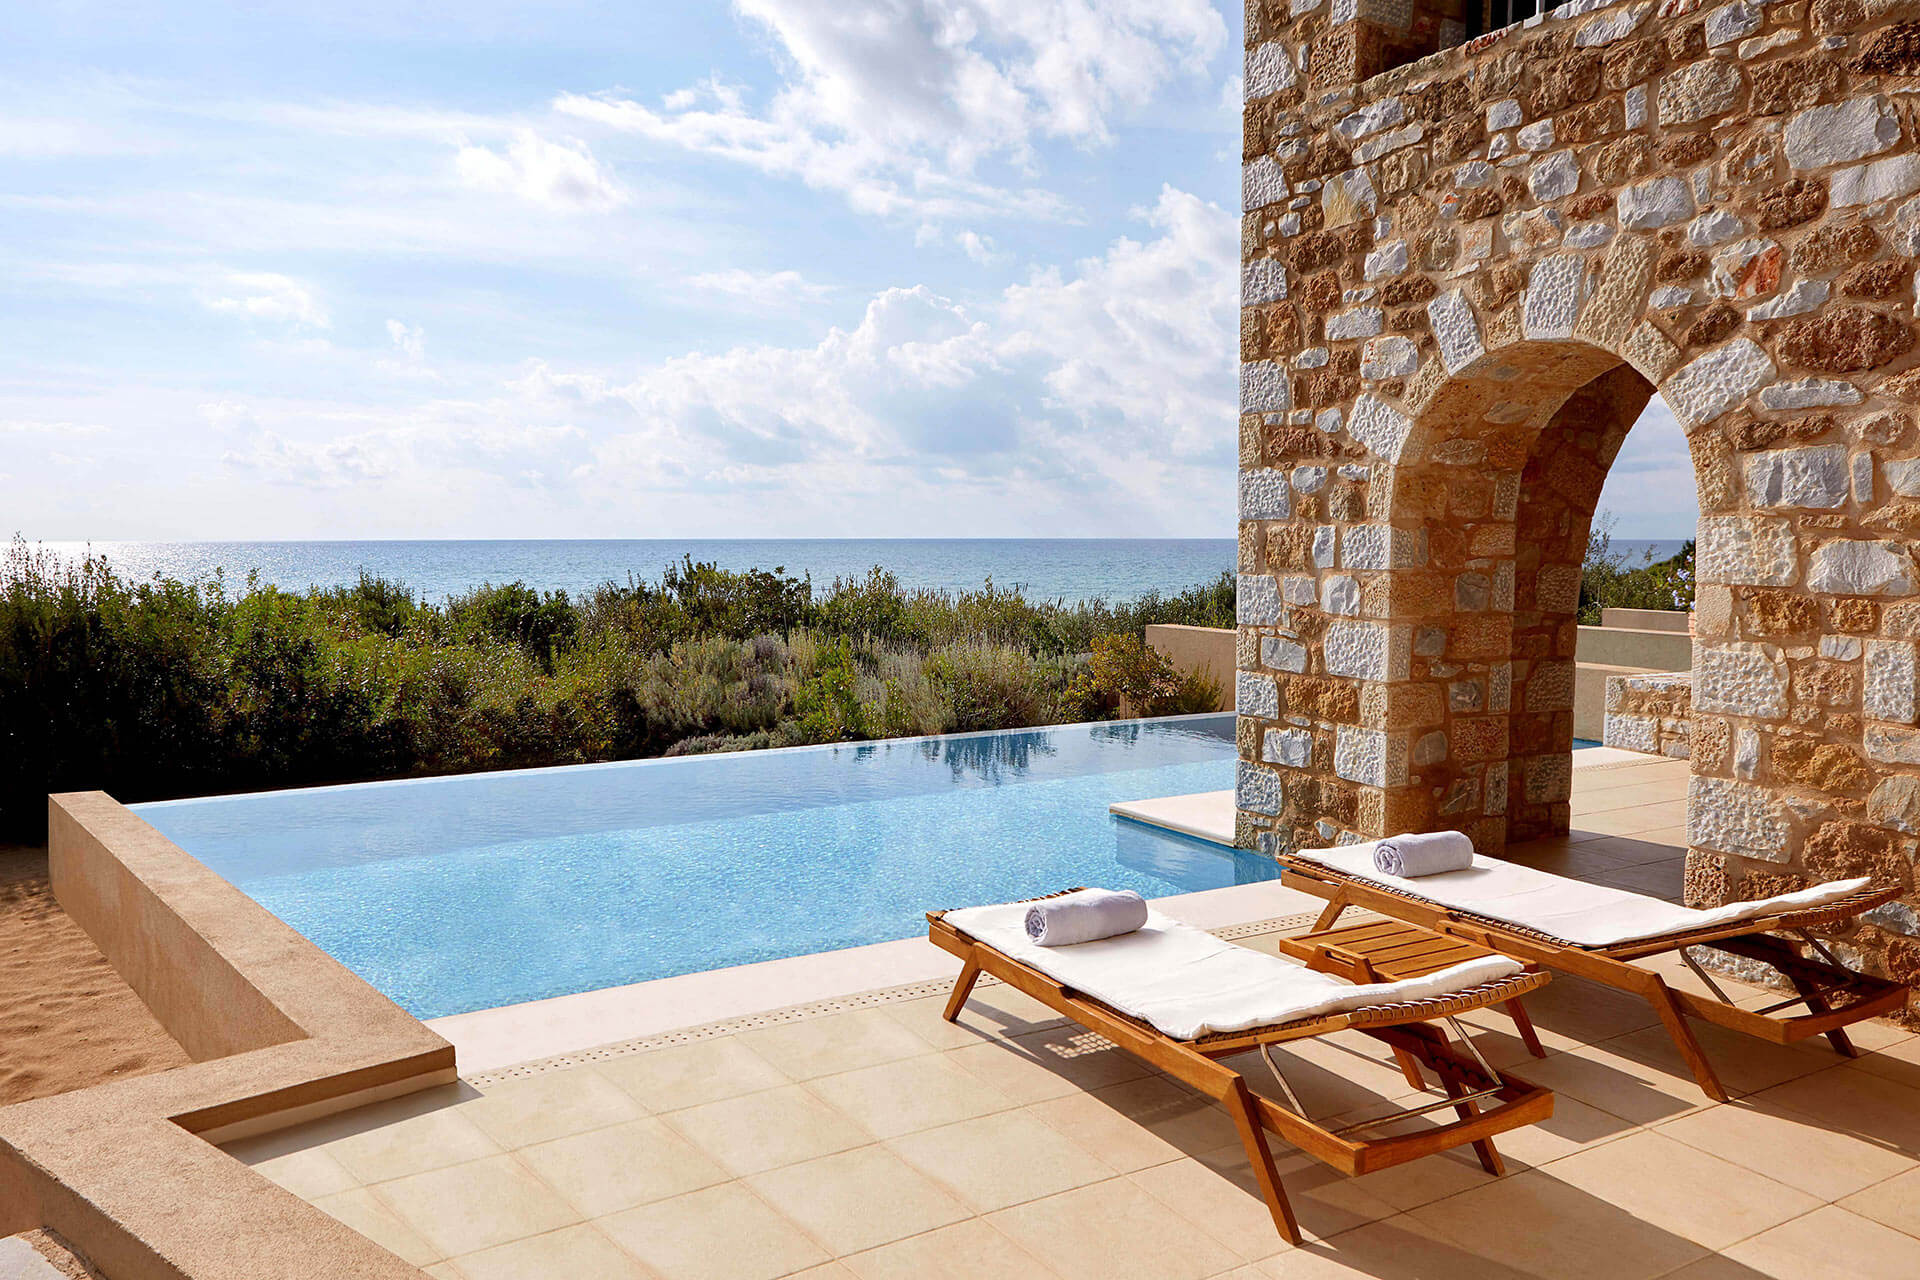 THE RESIDENCES AT THE WESTIN RESORT, COSTA NAVARINO